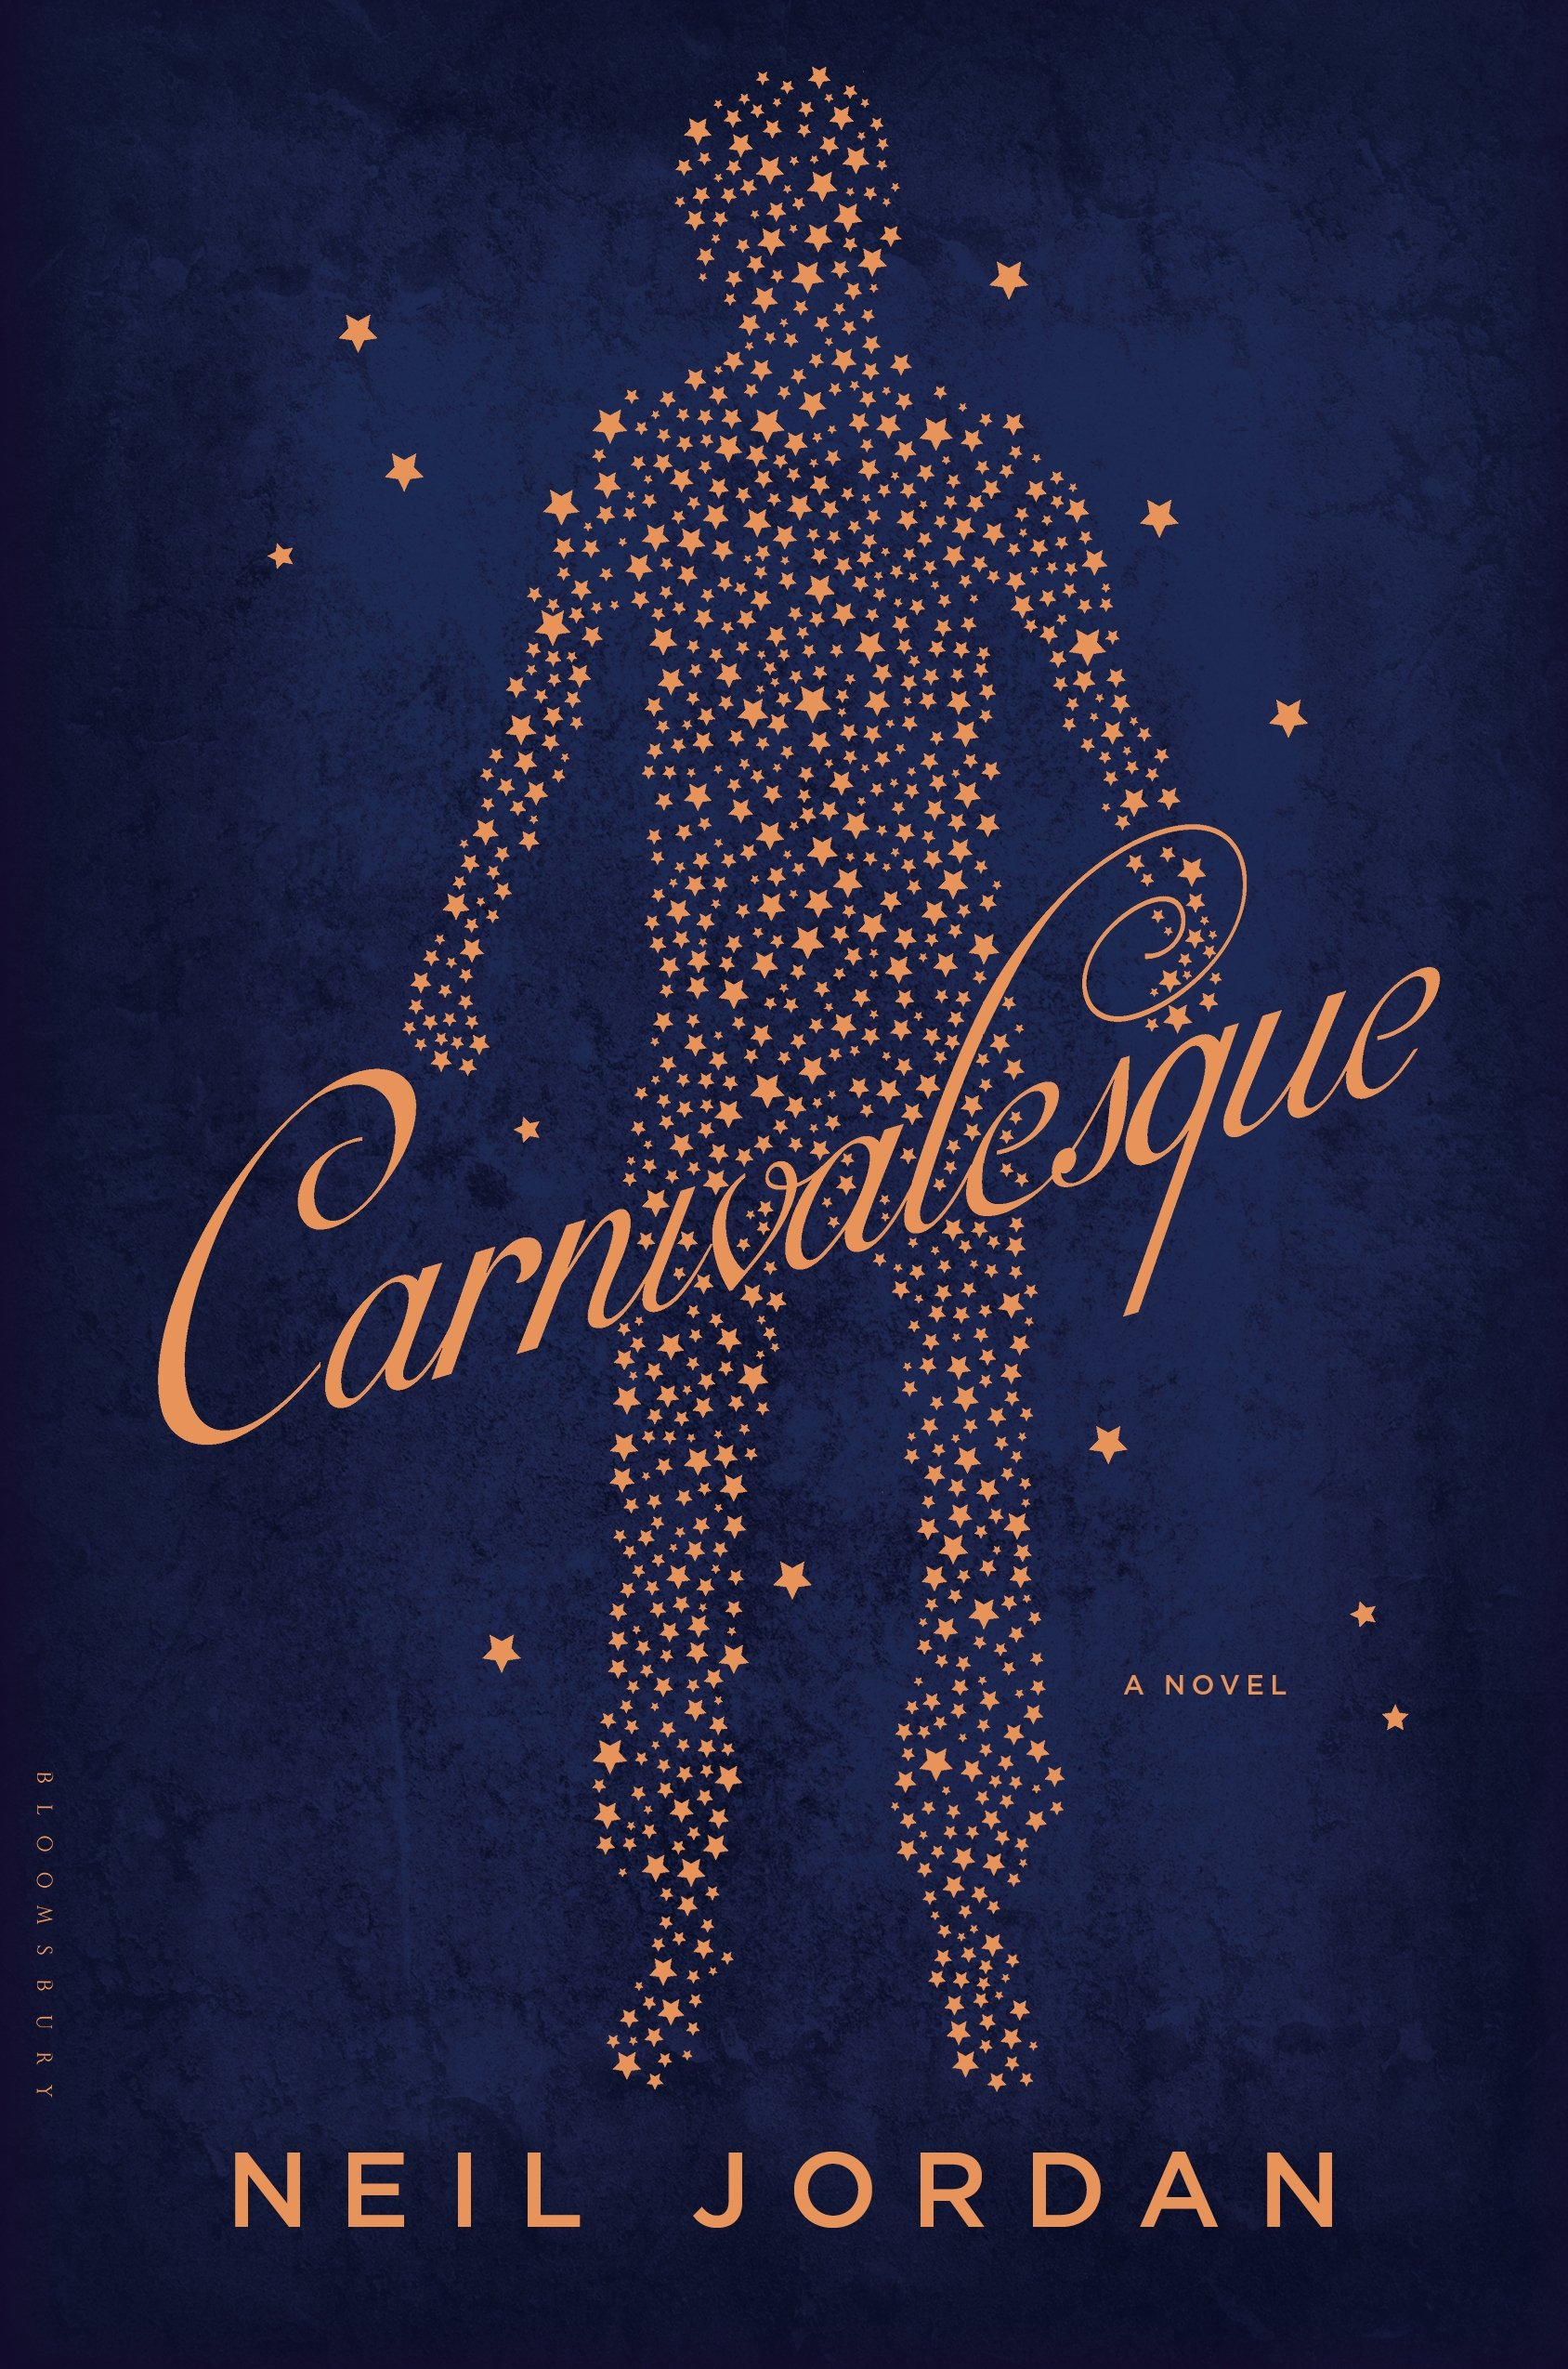 CARNIVALESQUE...https://storgy.com/2017/02/23/book-review-carnivalesque-by-neil-jordan/